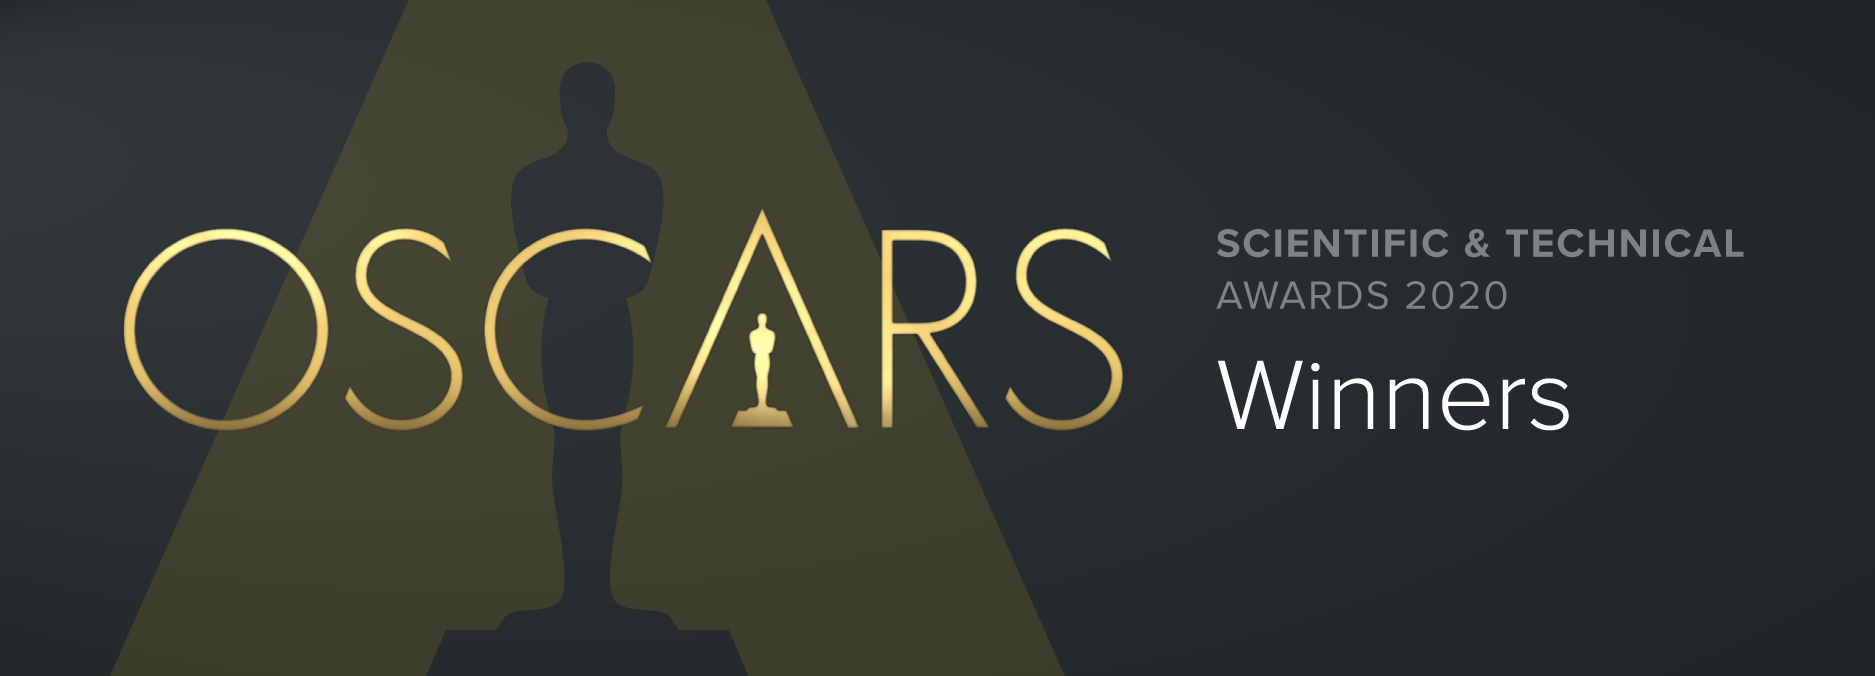 post-blog-scientific-and-tech-awards-oscars-banner